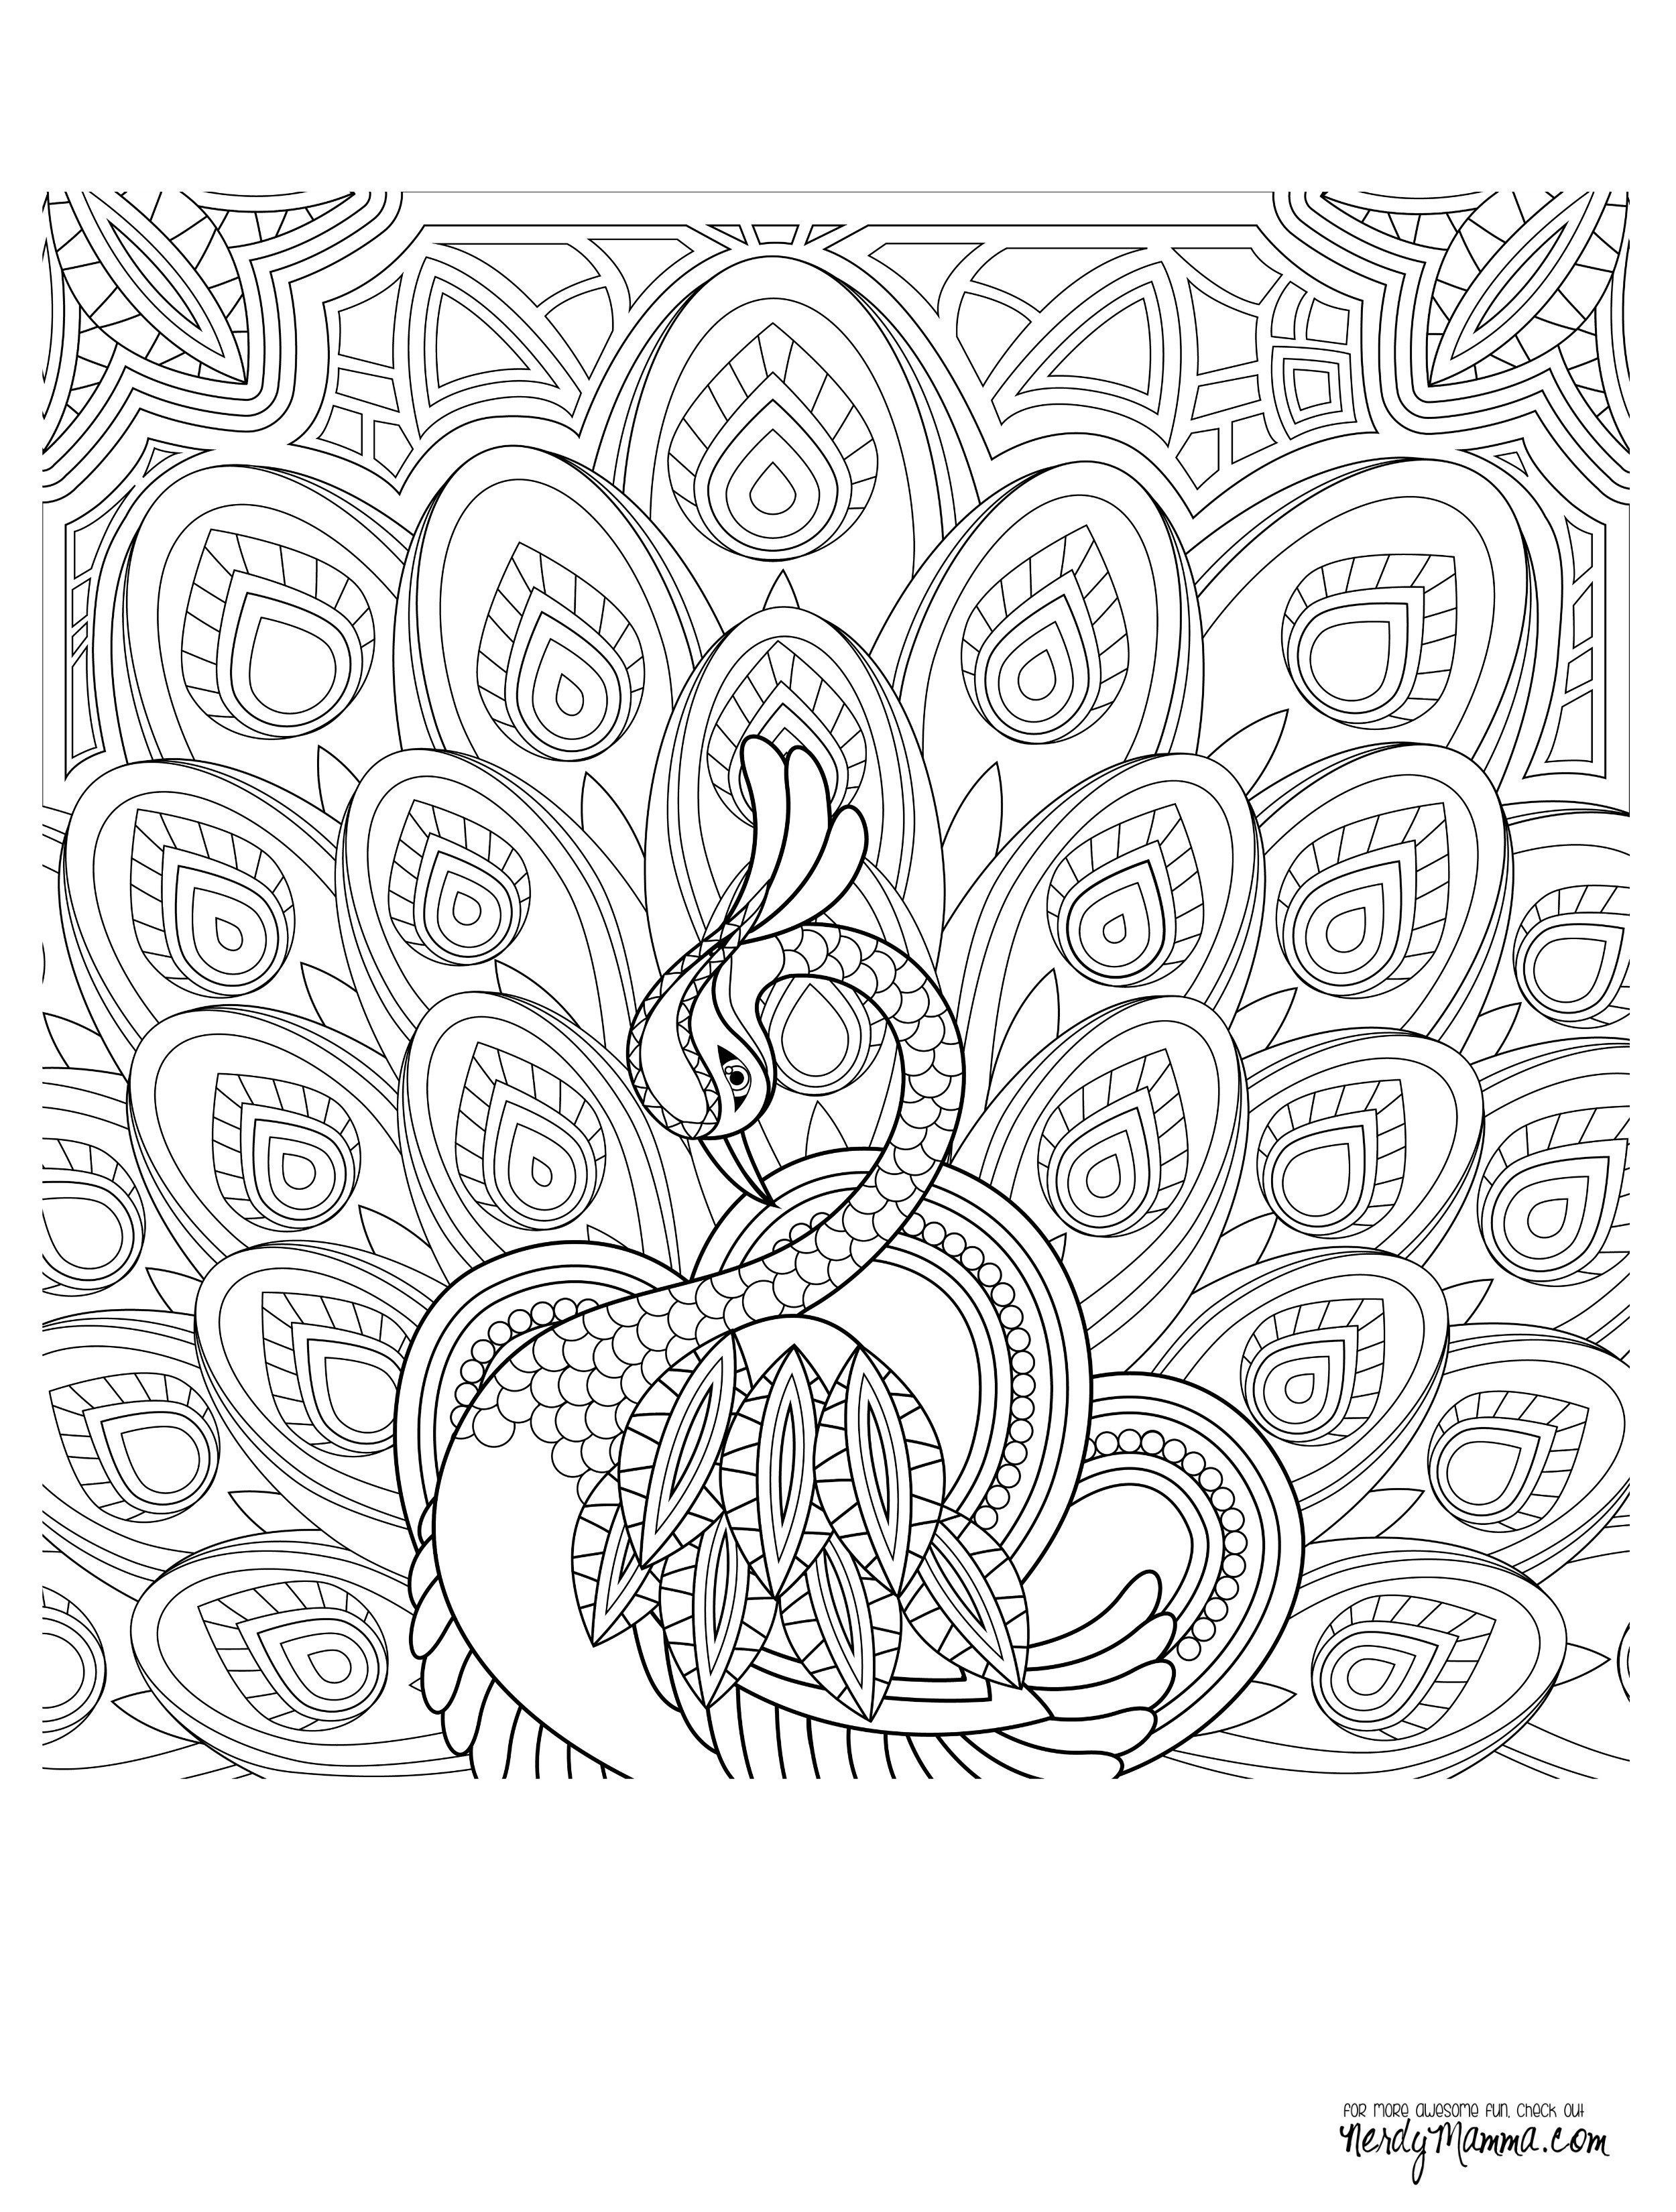 Doodle Coloring Pages  Gallery 4s - Free Download